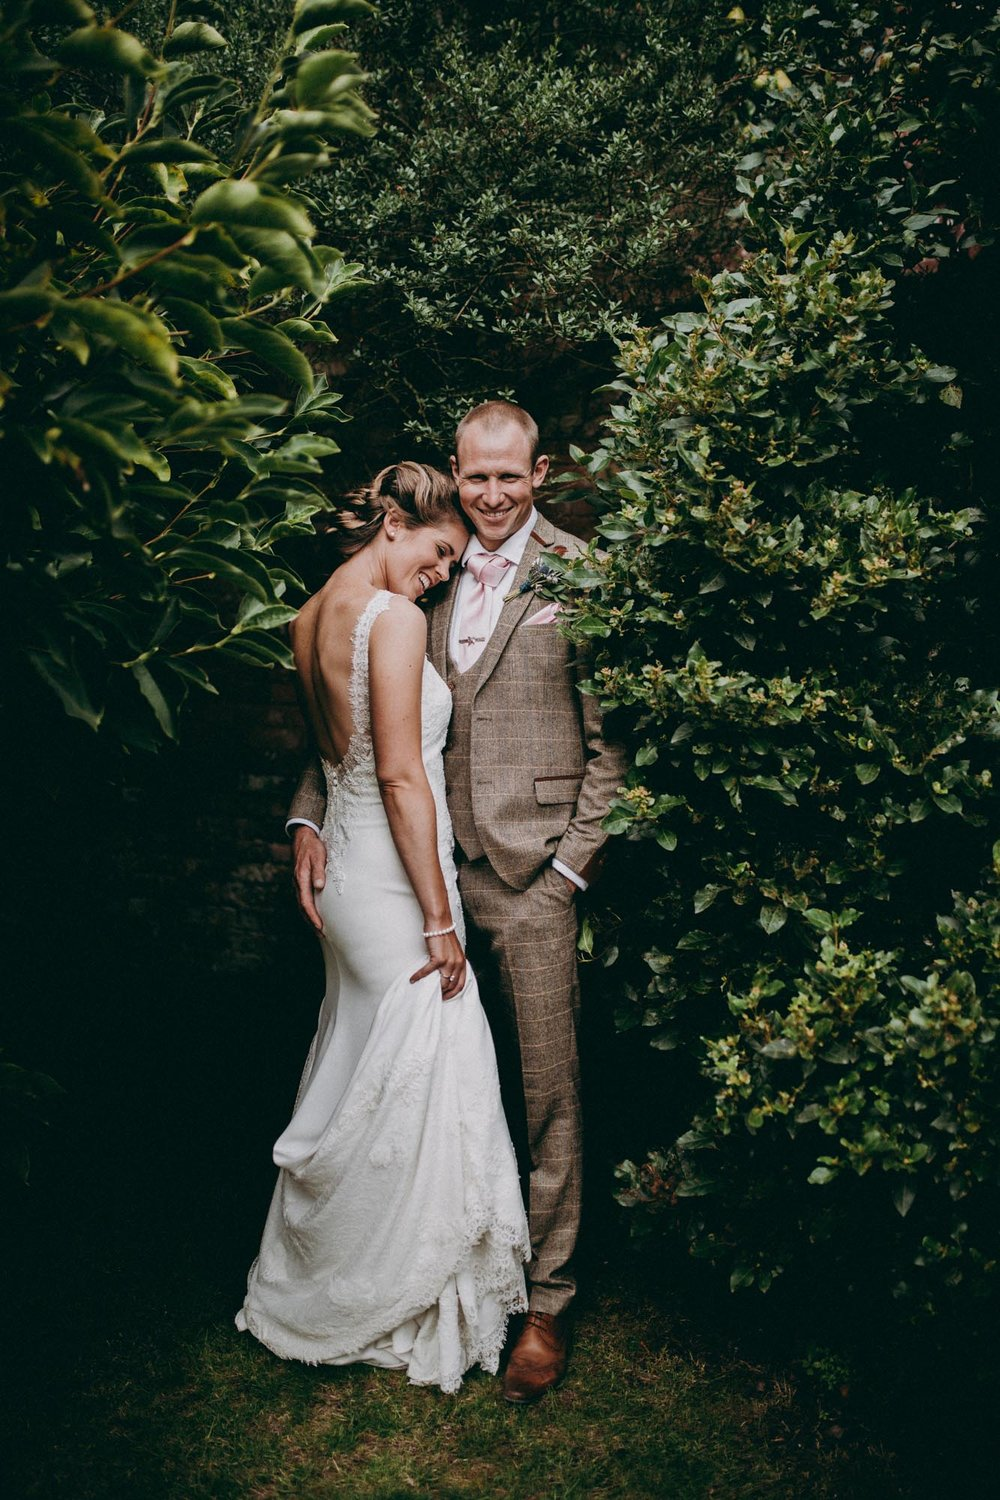 cotswold wedding photographer.jpg